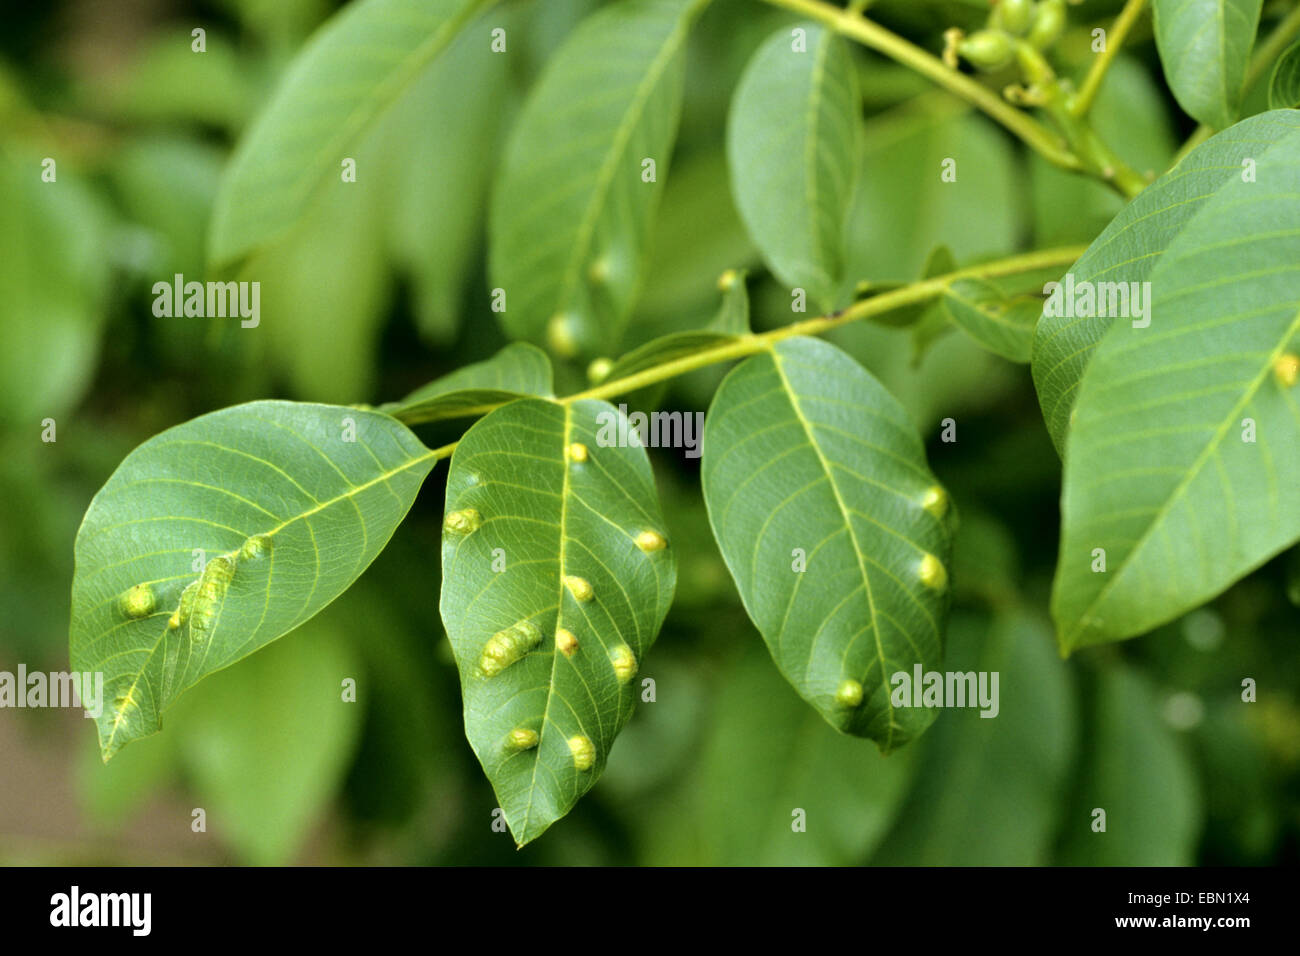 walnut blister mite (Eriophyes erinea, Eriophyes tristriatus), at walnut leaf, Germany - Stock Image